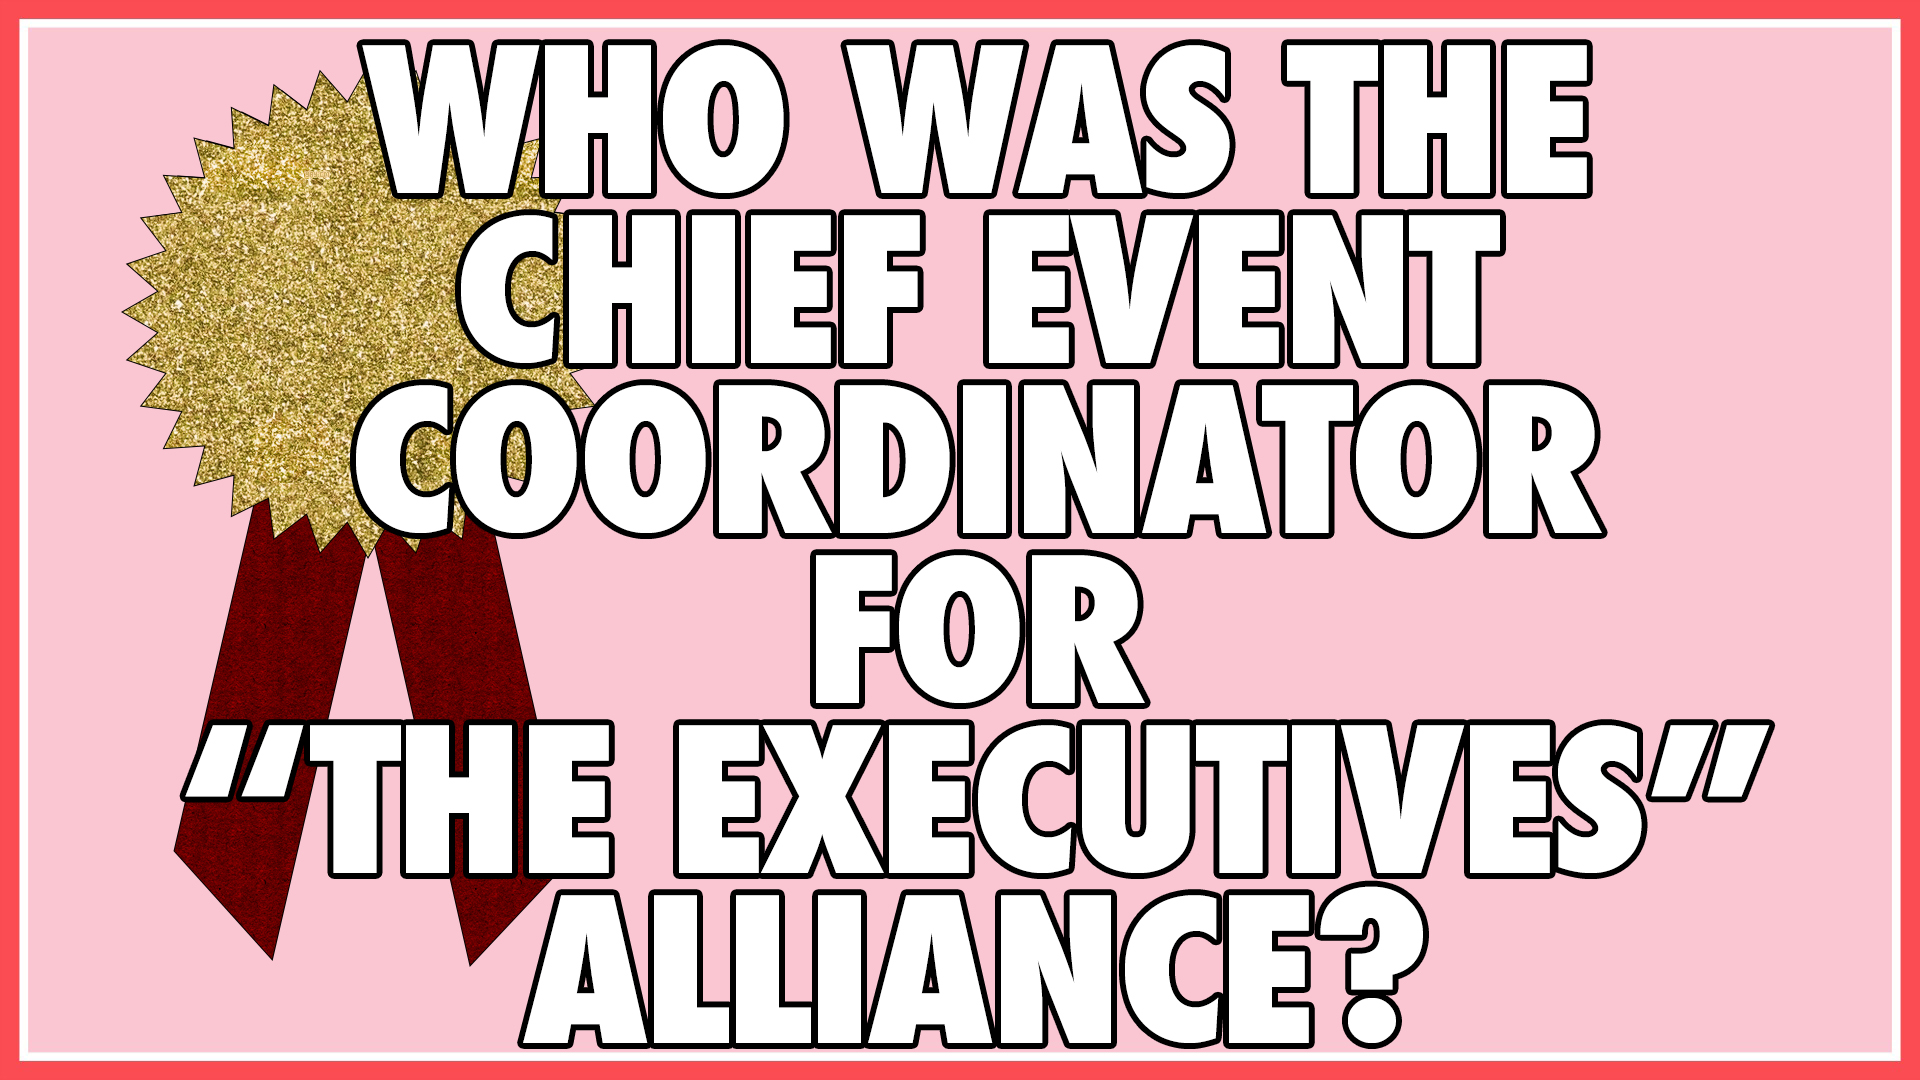 Who was the Chief Event Coordinator for